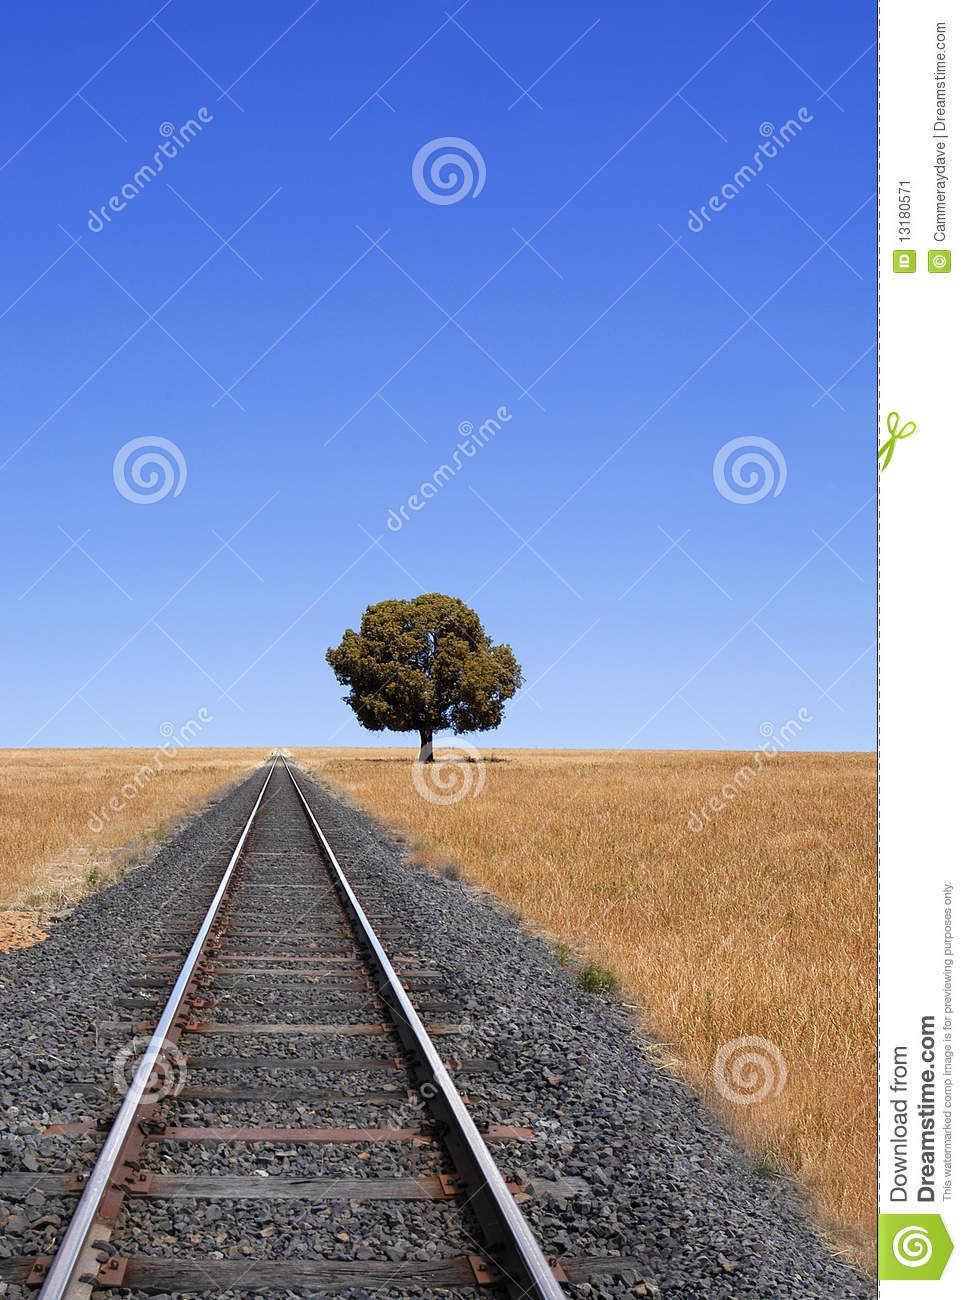 Download Train Tracks And Horizon stock image. Image of rail, midwest - 13180571